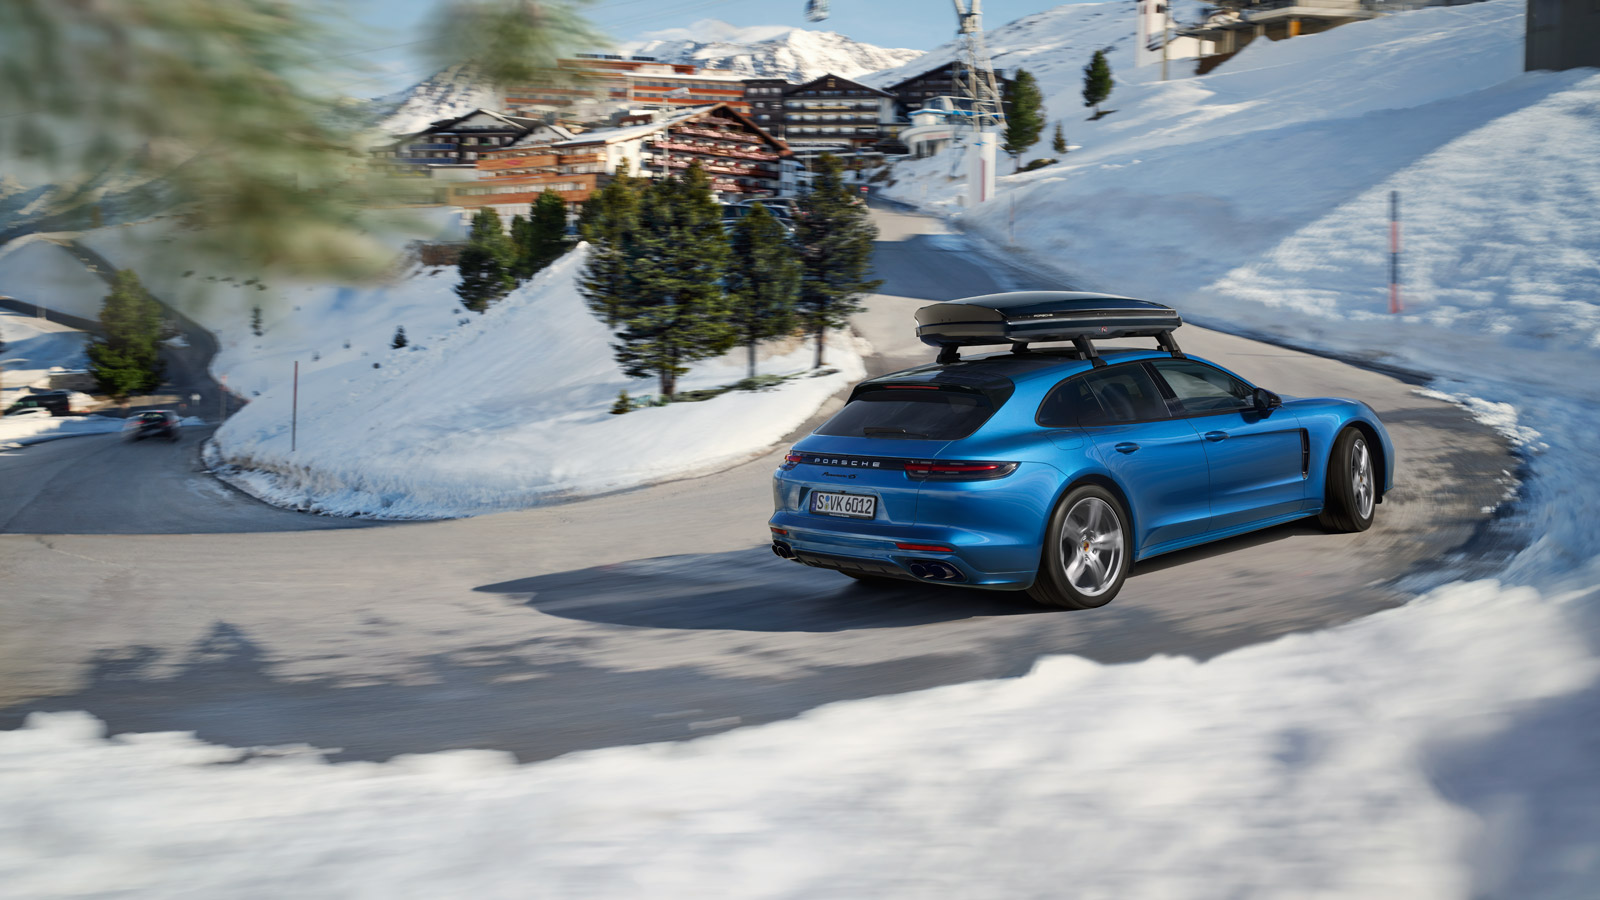 Porsche - ... when is it time for winter tires?